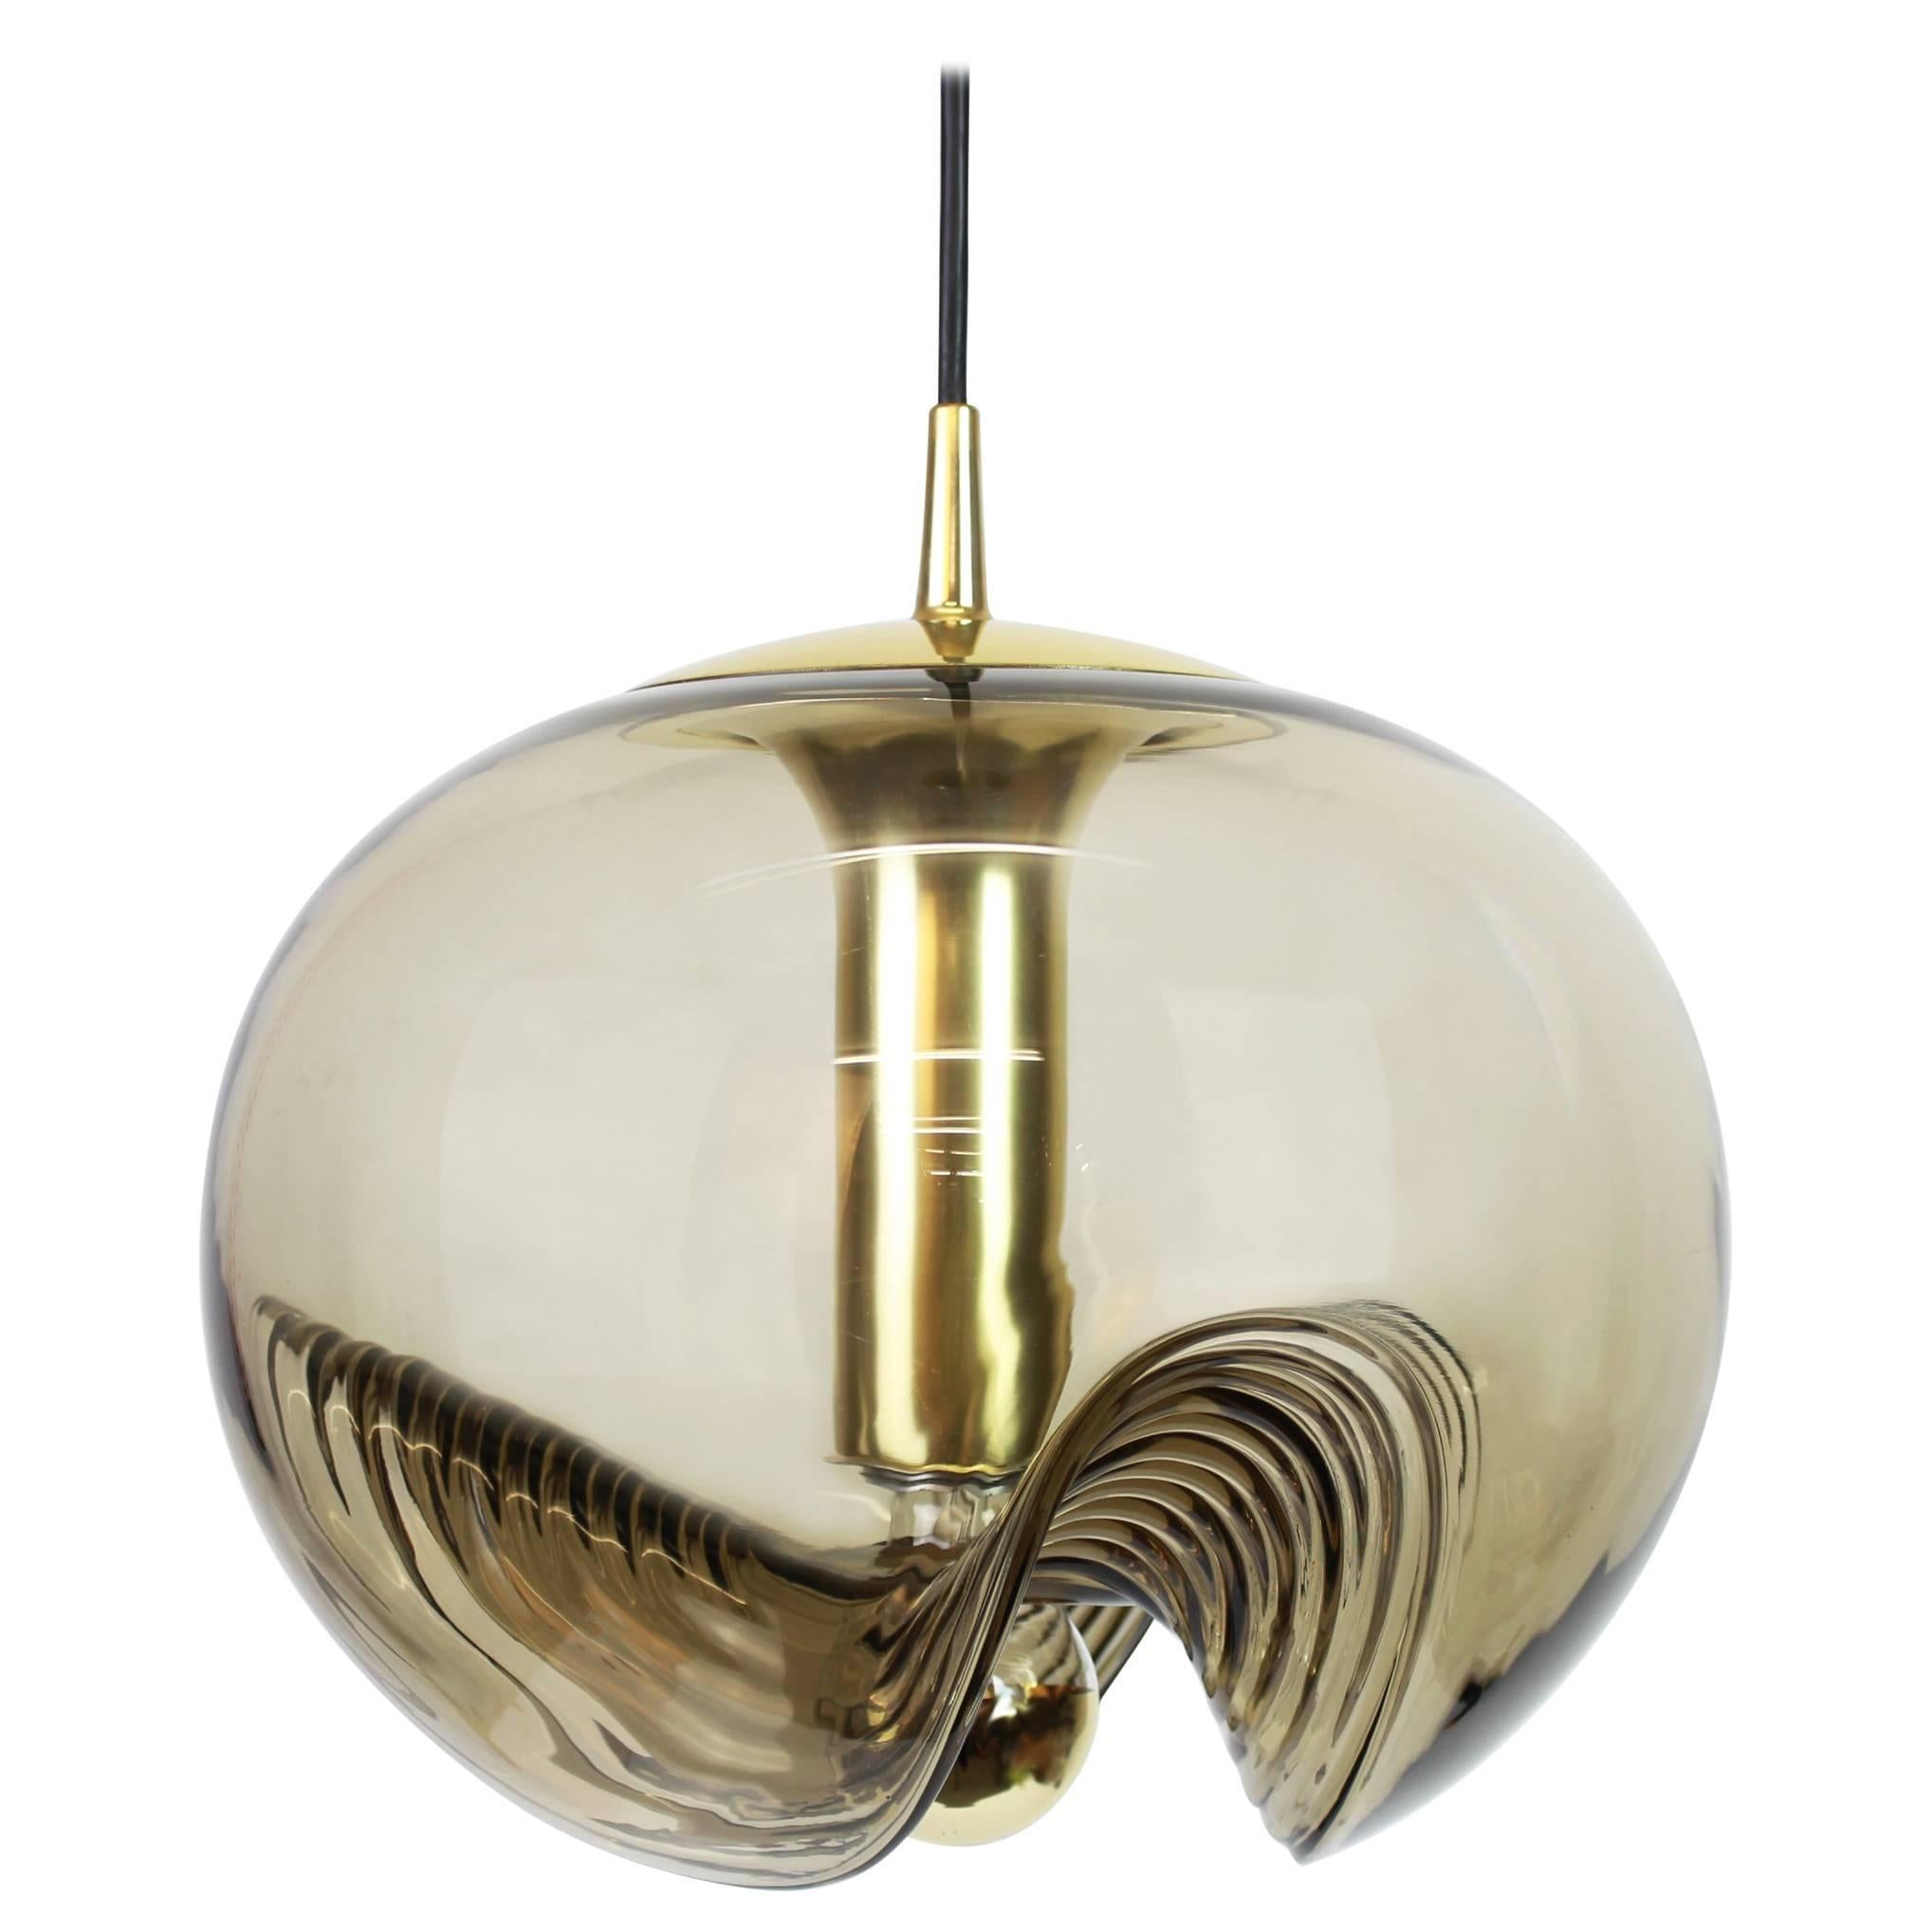 One of four Large Smoked Glass Pendant Light by Peill & Putzler, Germany, 1970s